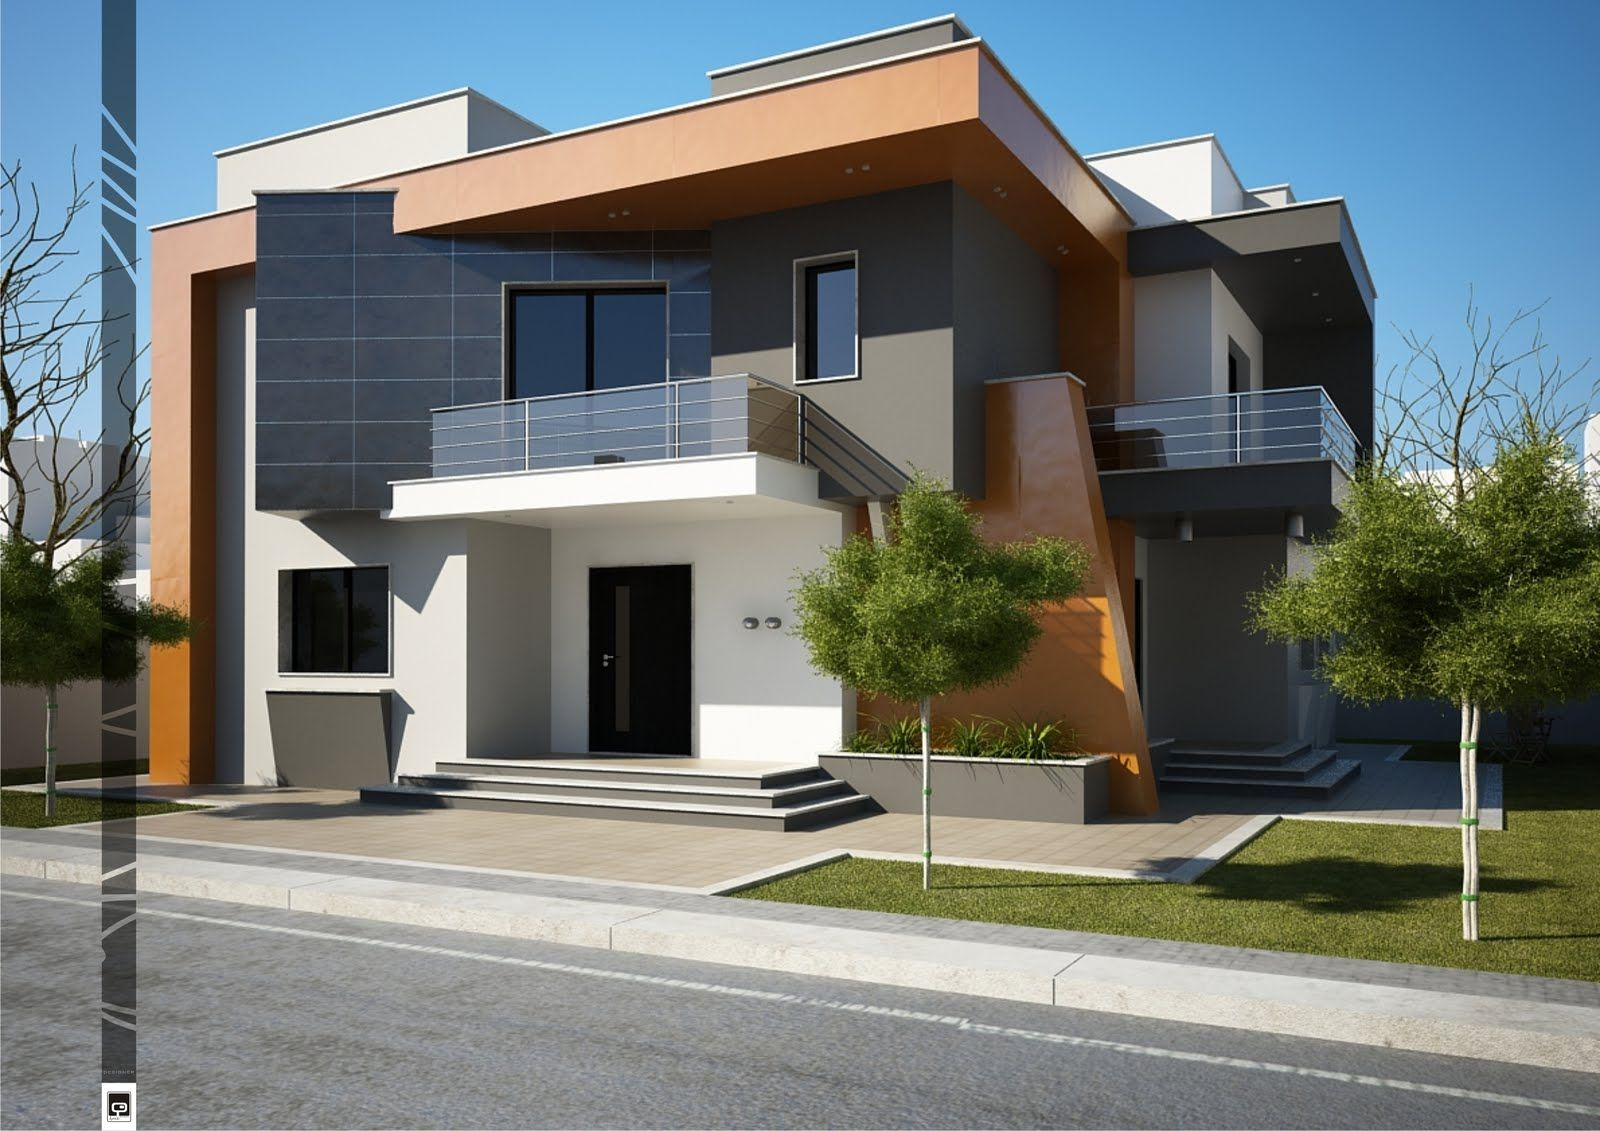 Architecture design 1 colores de exterior casas for Casas minimalistas exterior